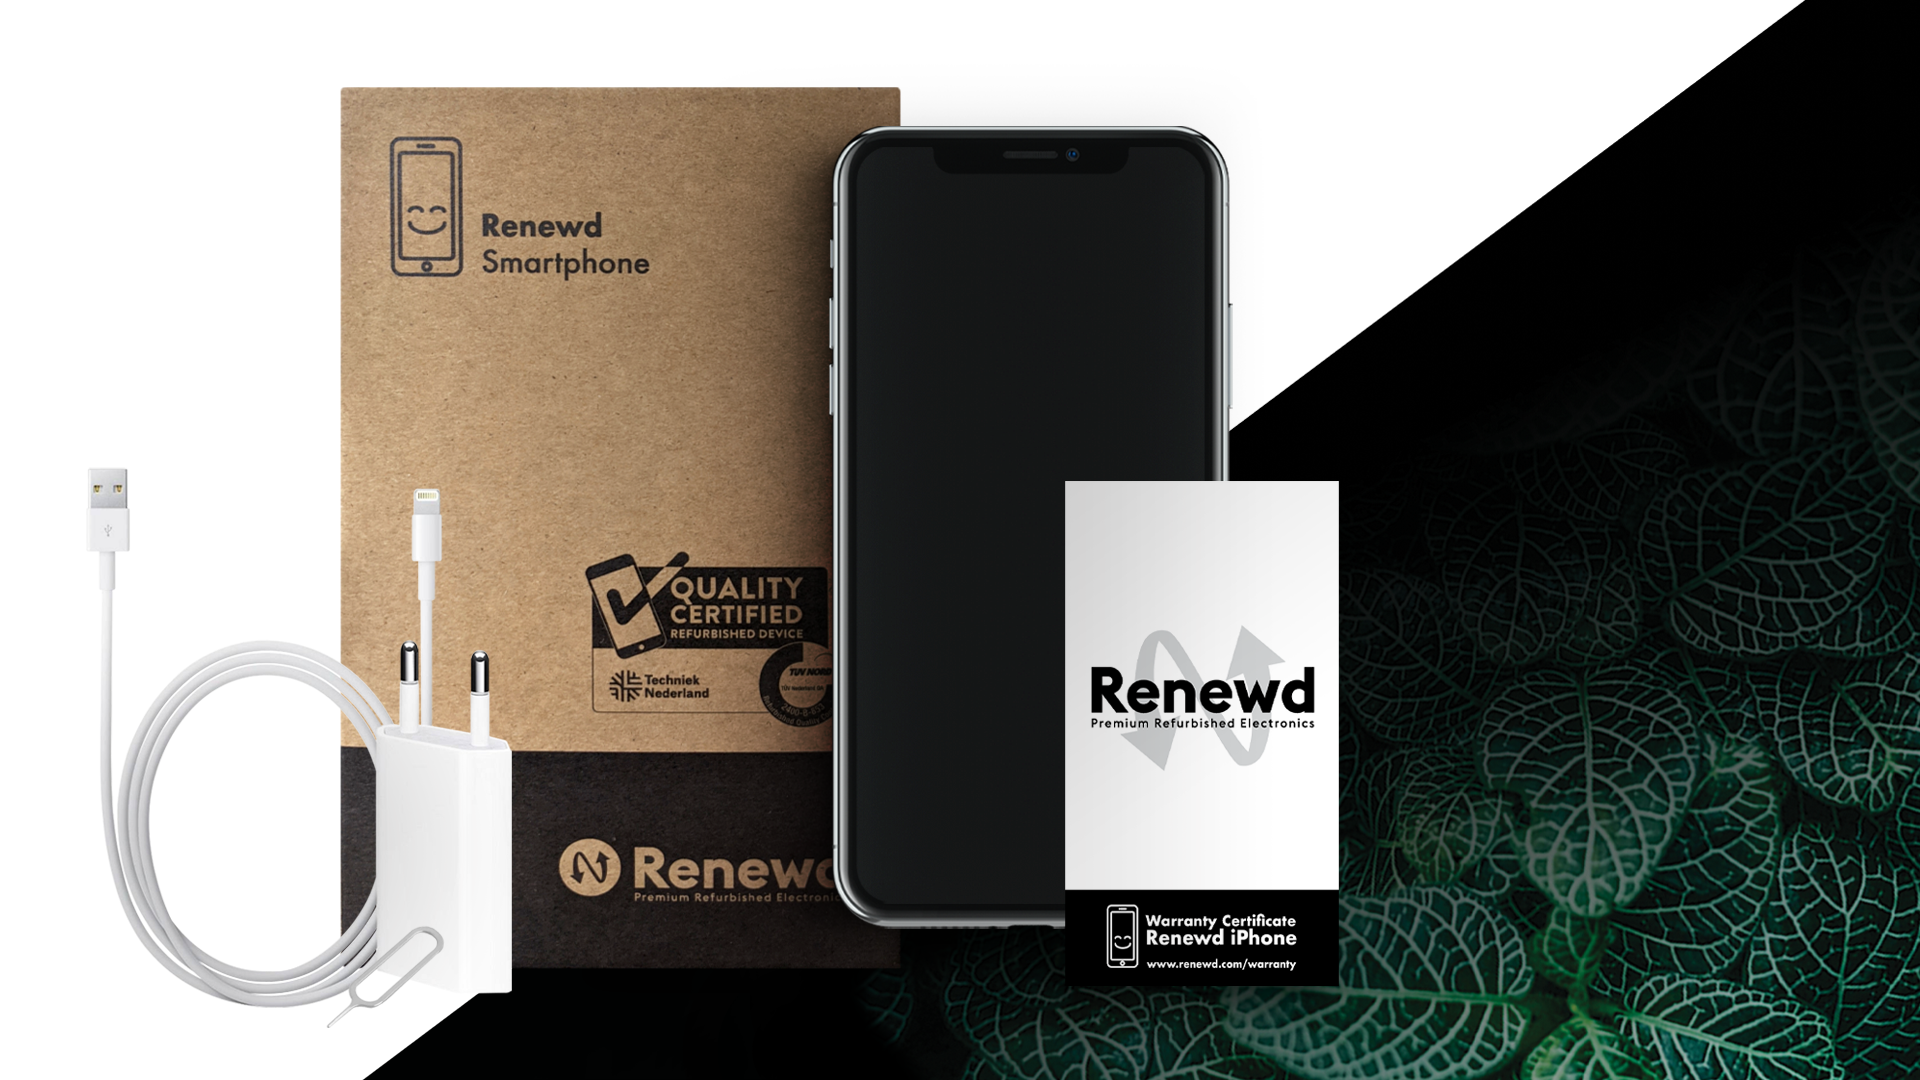 Packaging and accessories Renewd